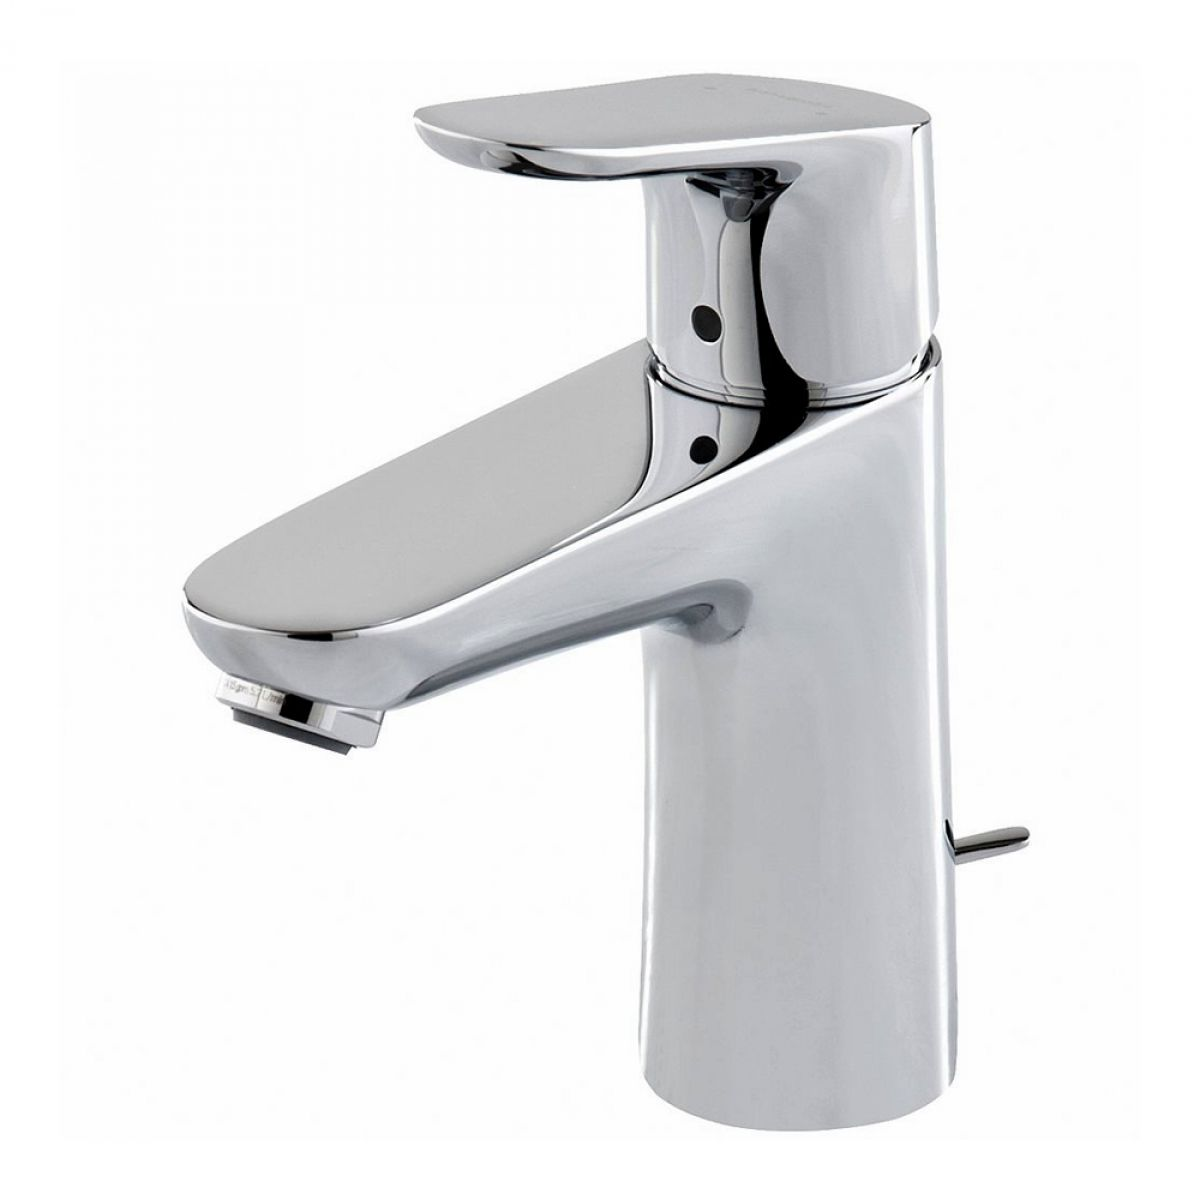 Hansgrohe Focus 100 Basin Mixer Tap : UK Bathrooms